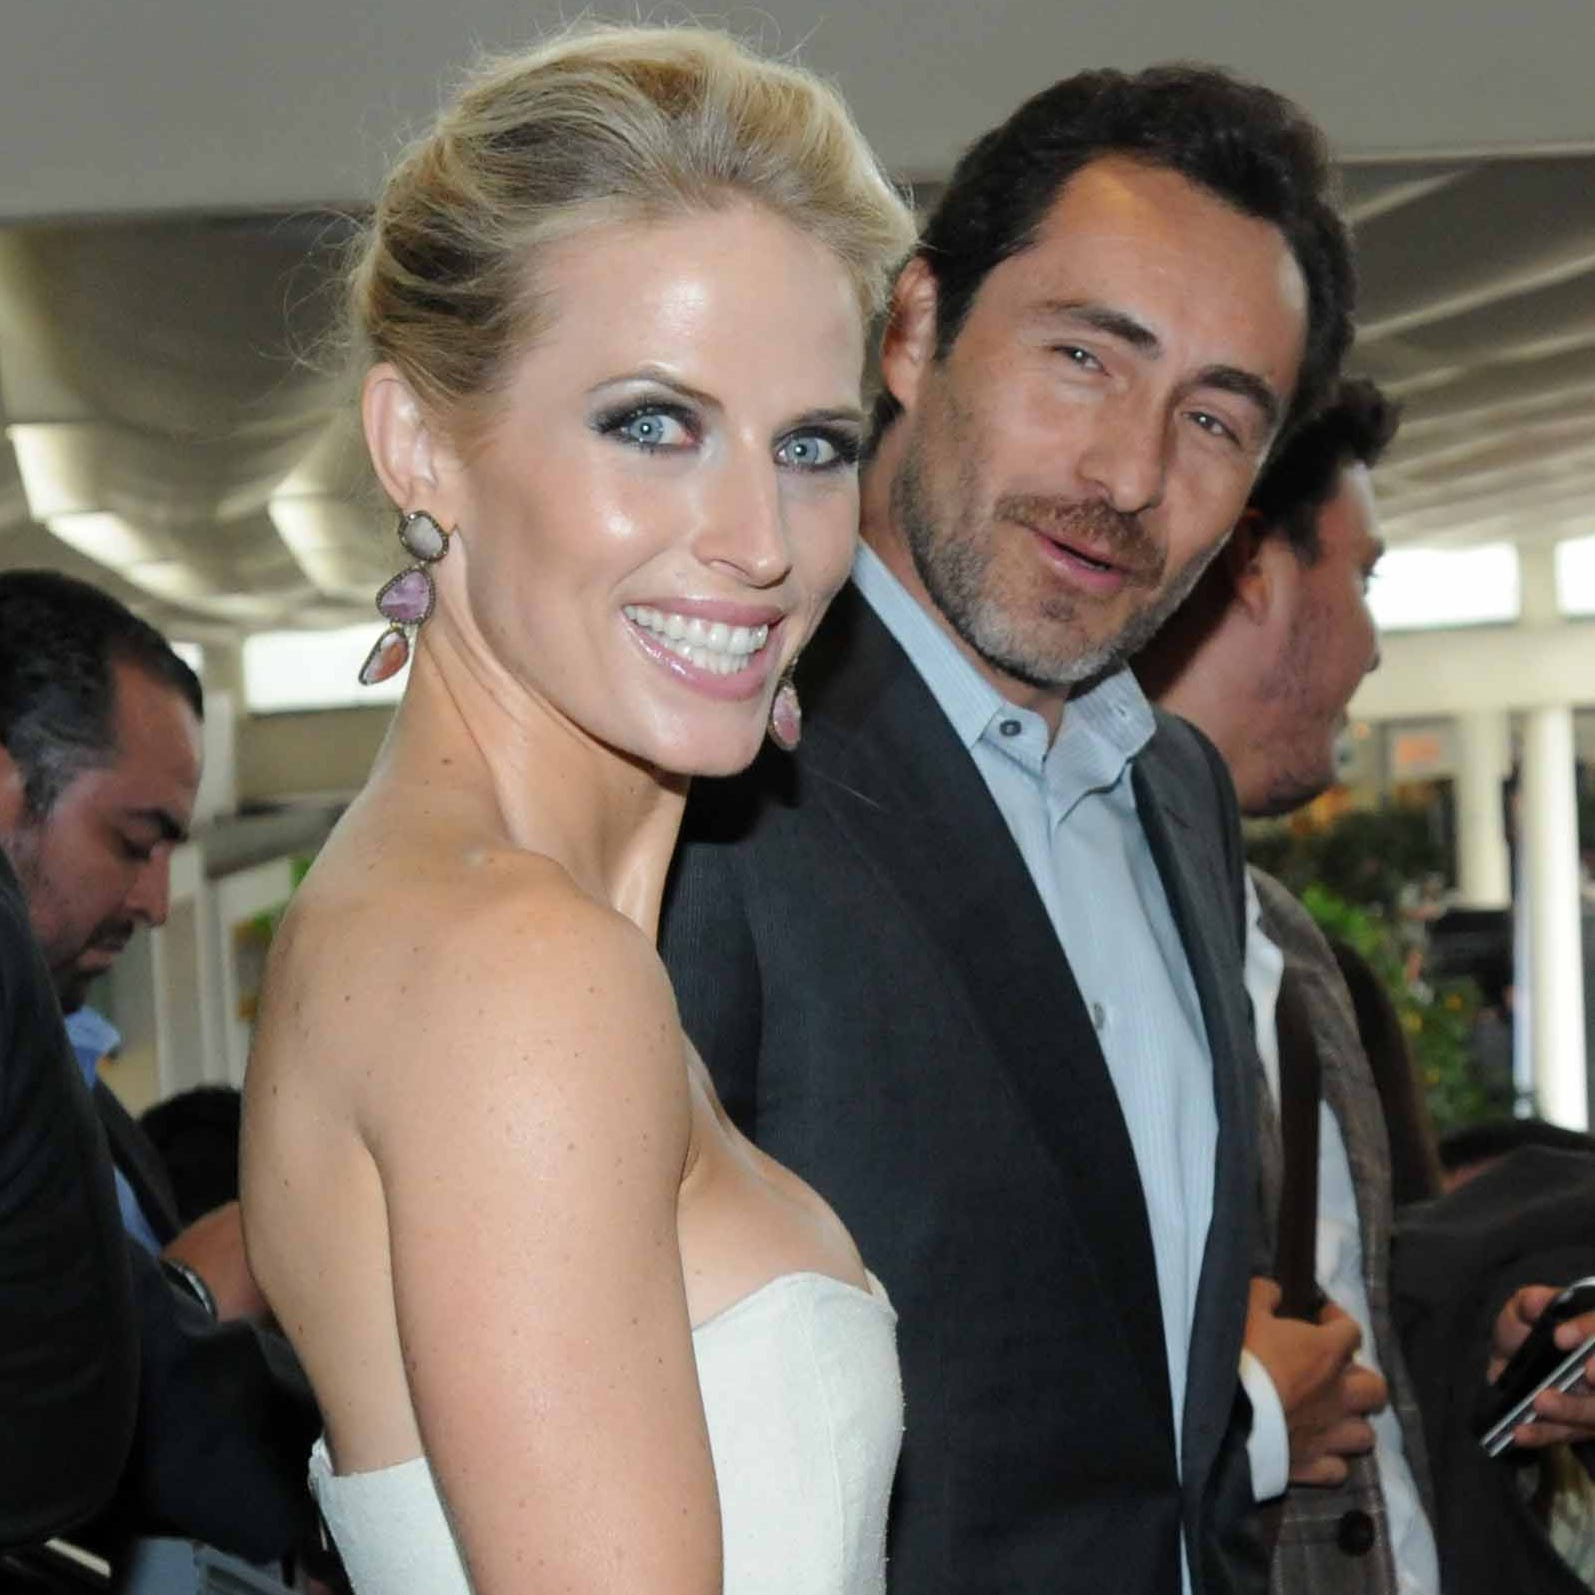 Fallece esposa del actor mexicano Demián Bichir